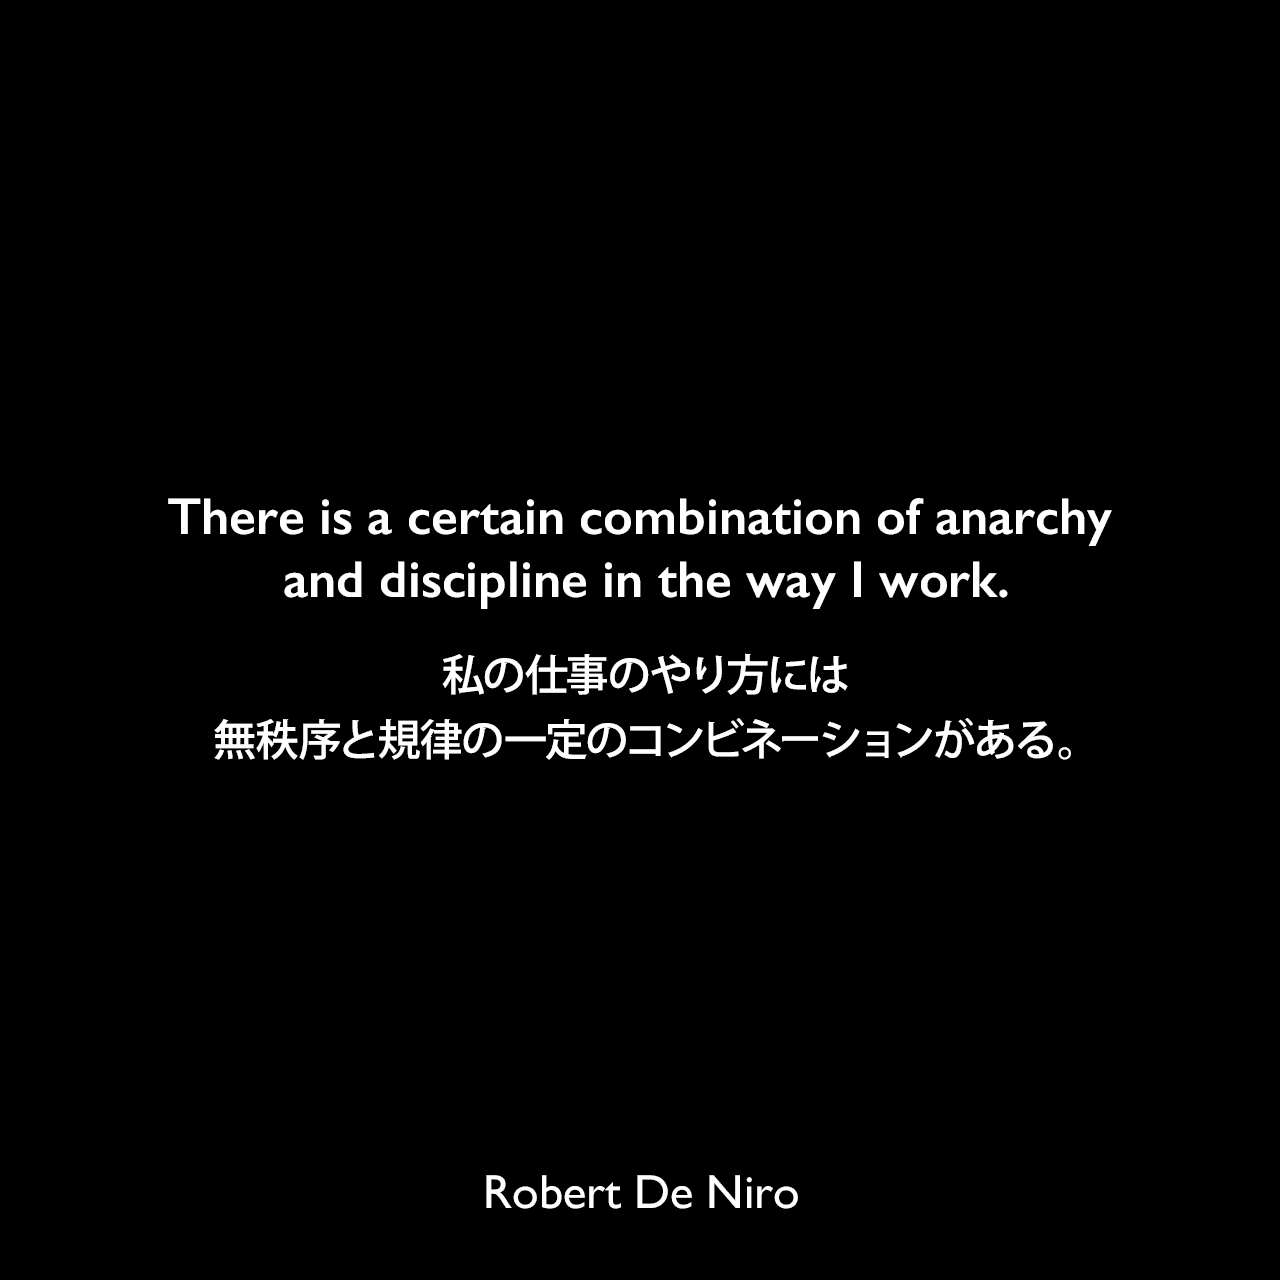 There is a certain combination of anarchy and discipline in the way I work.私の仕事のやり方には、無秩序と規律の一定のコンビネーションがある。Robert De Niro